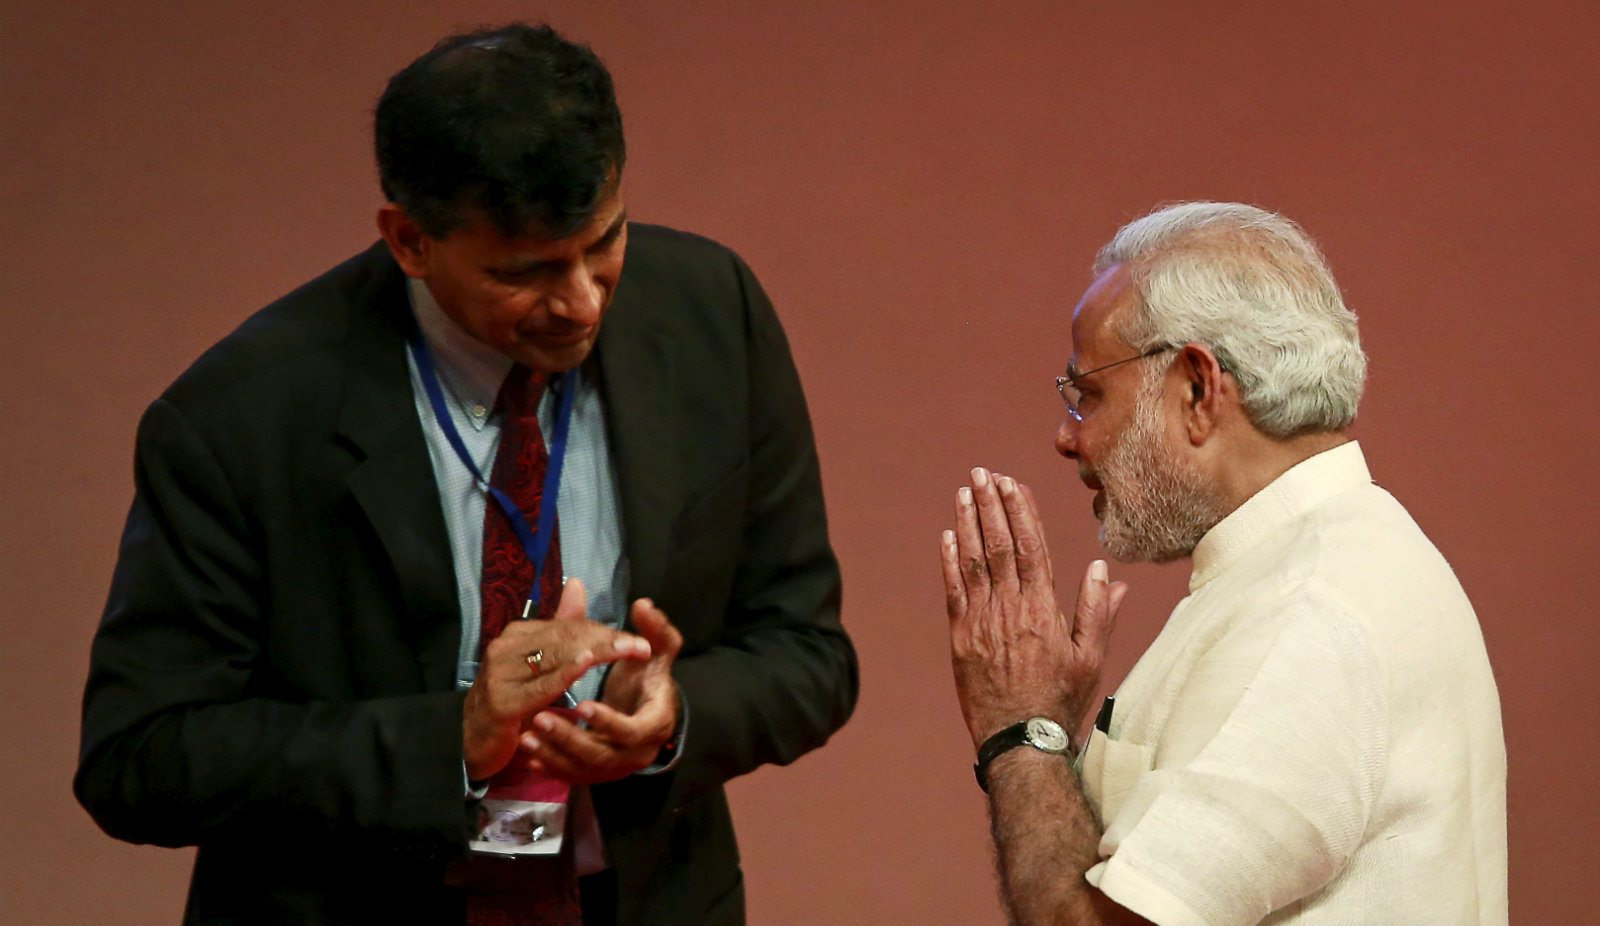 India's Prime Minister Narendra Modi gestures to Reserve Bank of India (RBI) Governor Raghuram Rajan at an event on financial inclusion in Mumbai April 2, 2015.